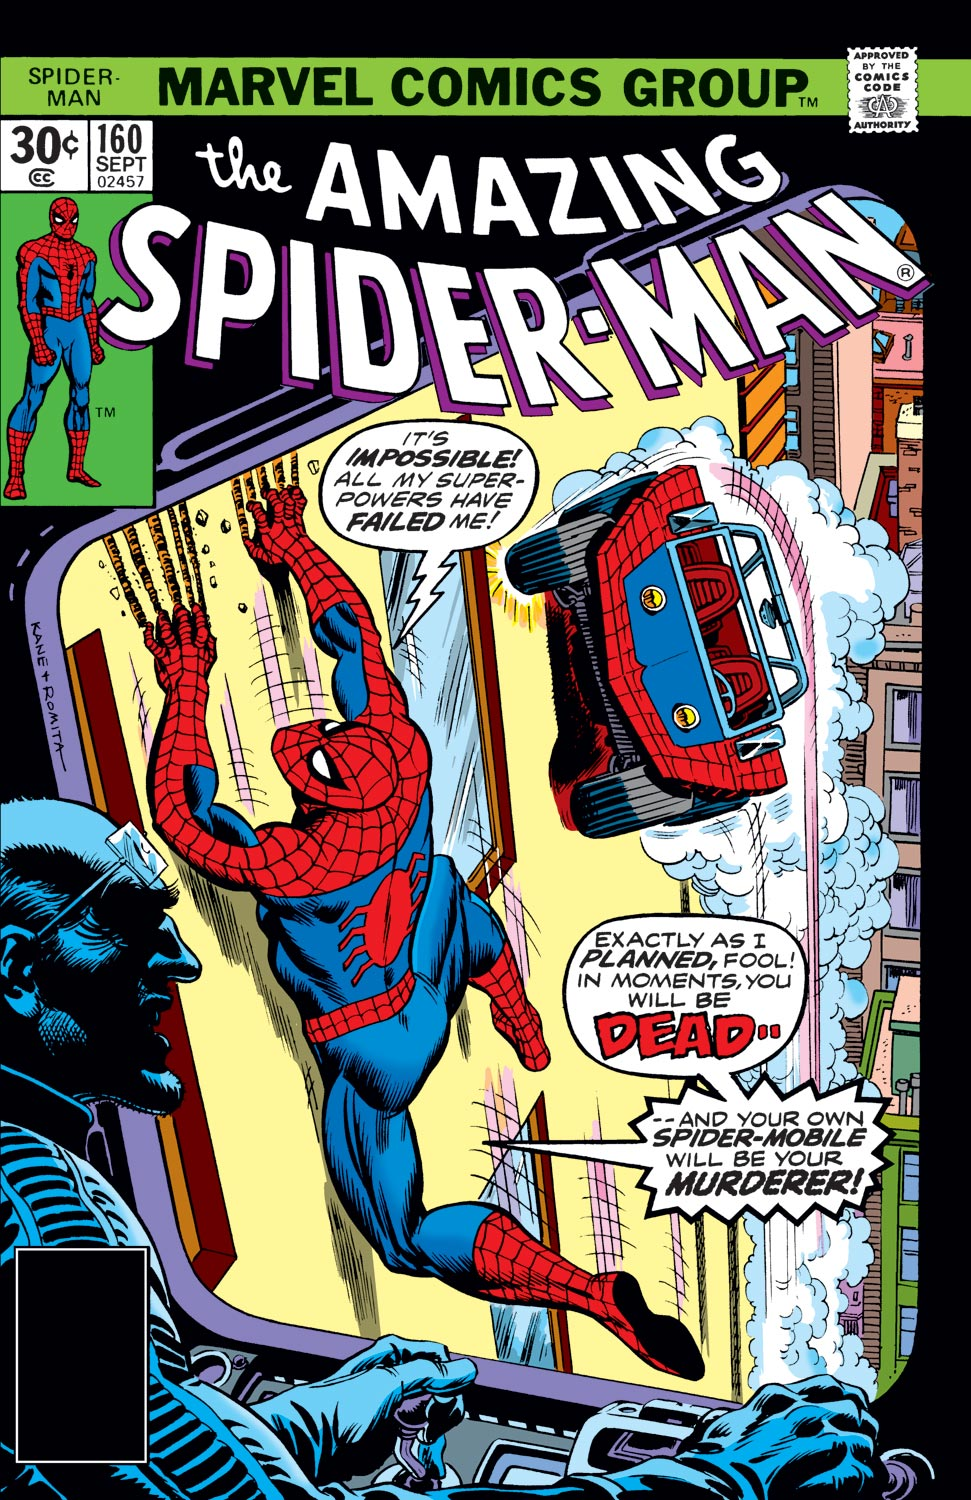 The Amazing Spider-Man (1963) #160